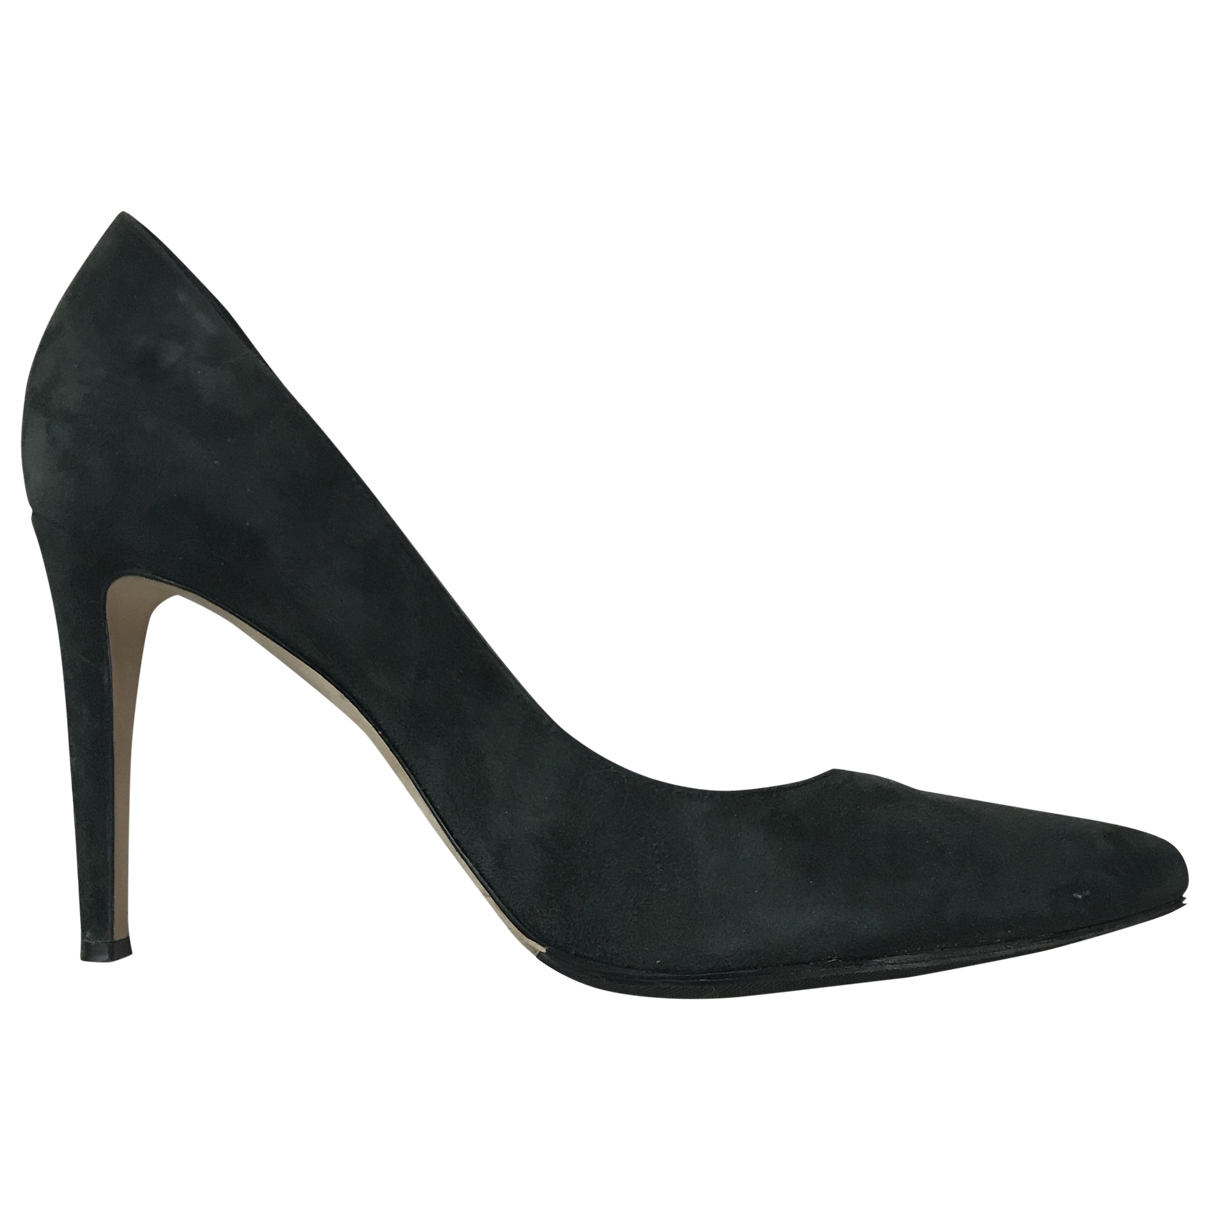 Sergio Rossi \N Anthracite Suede Heels for Women 39 EU